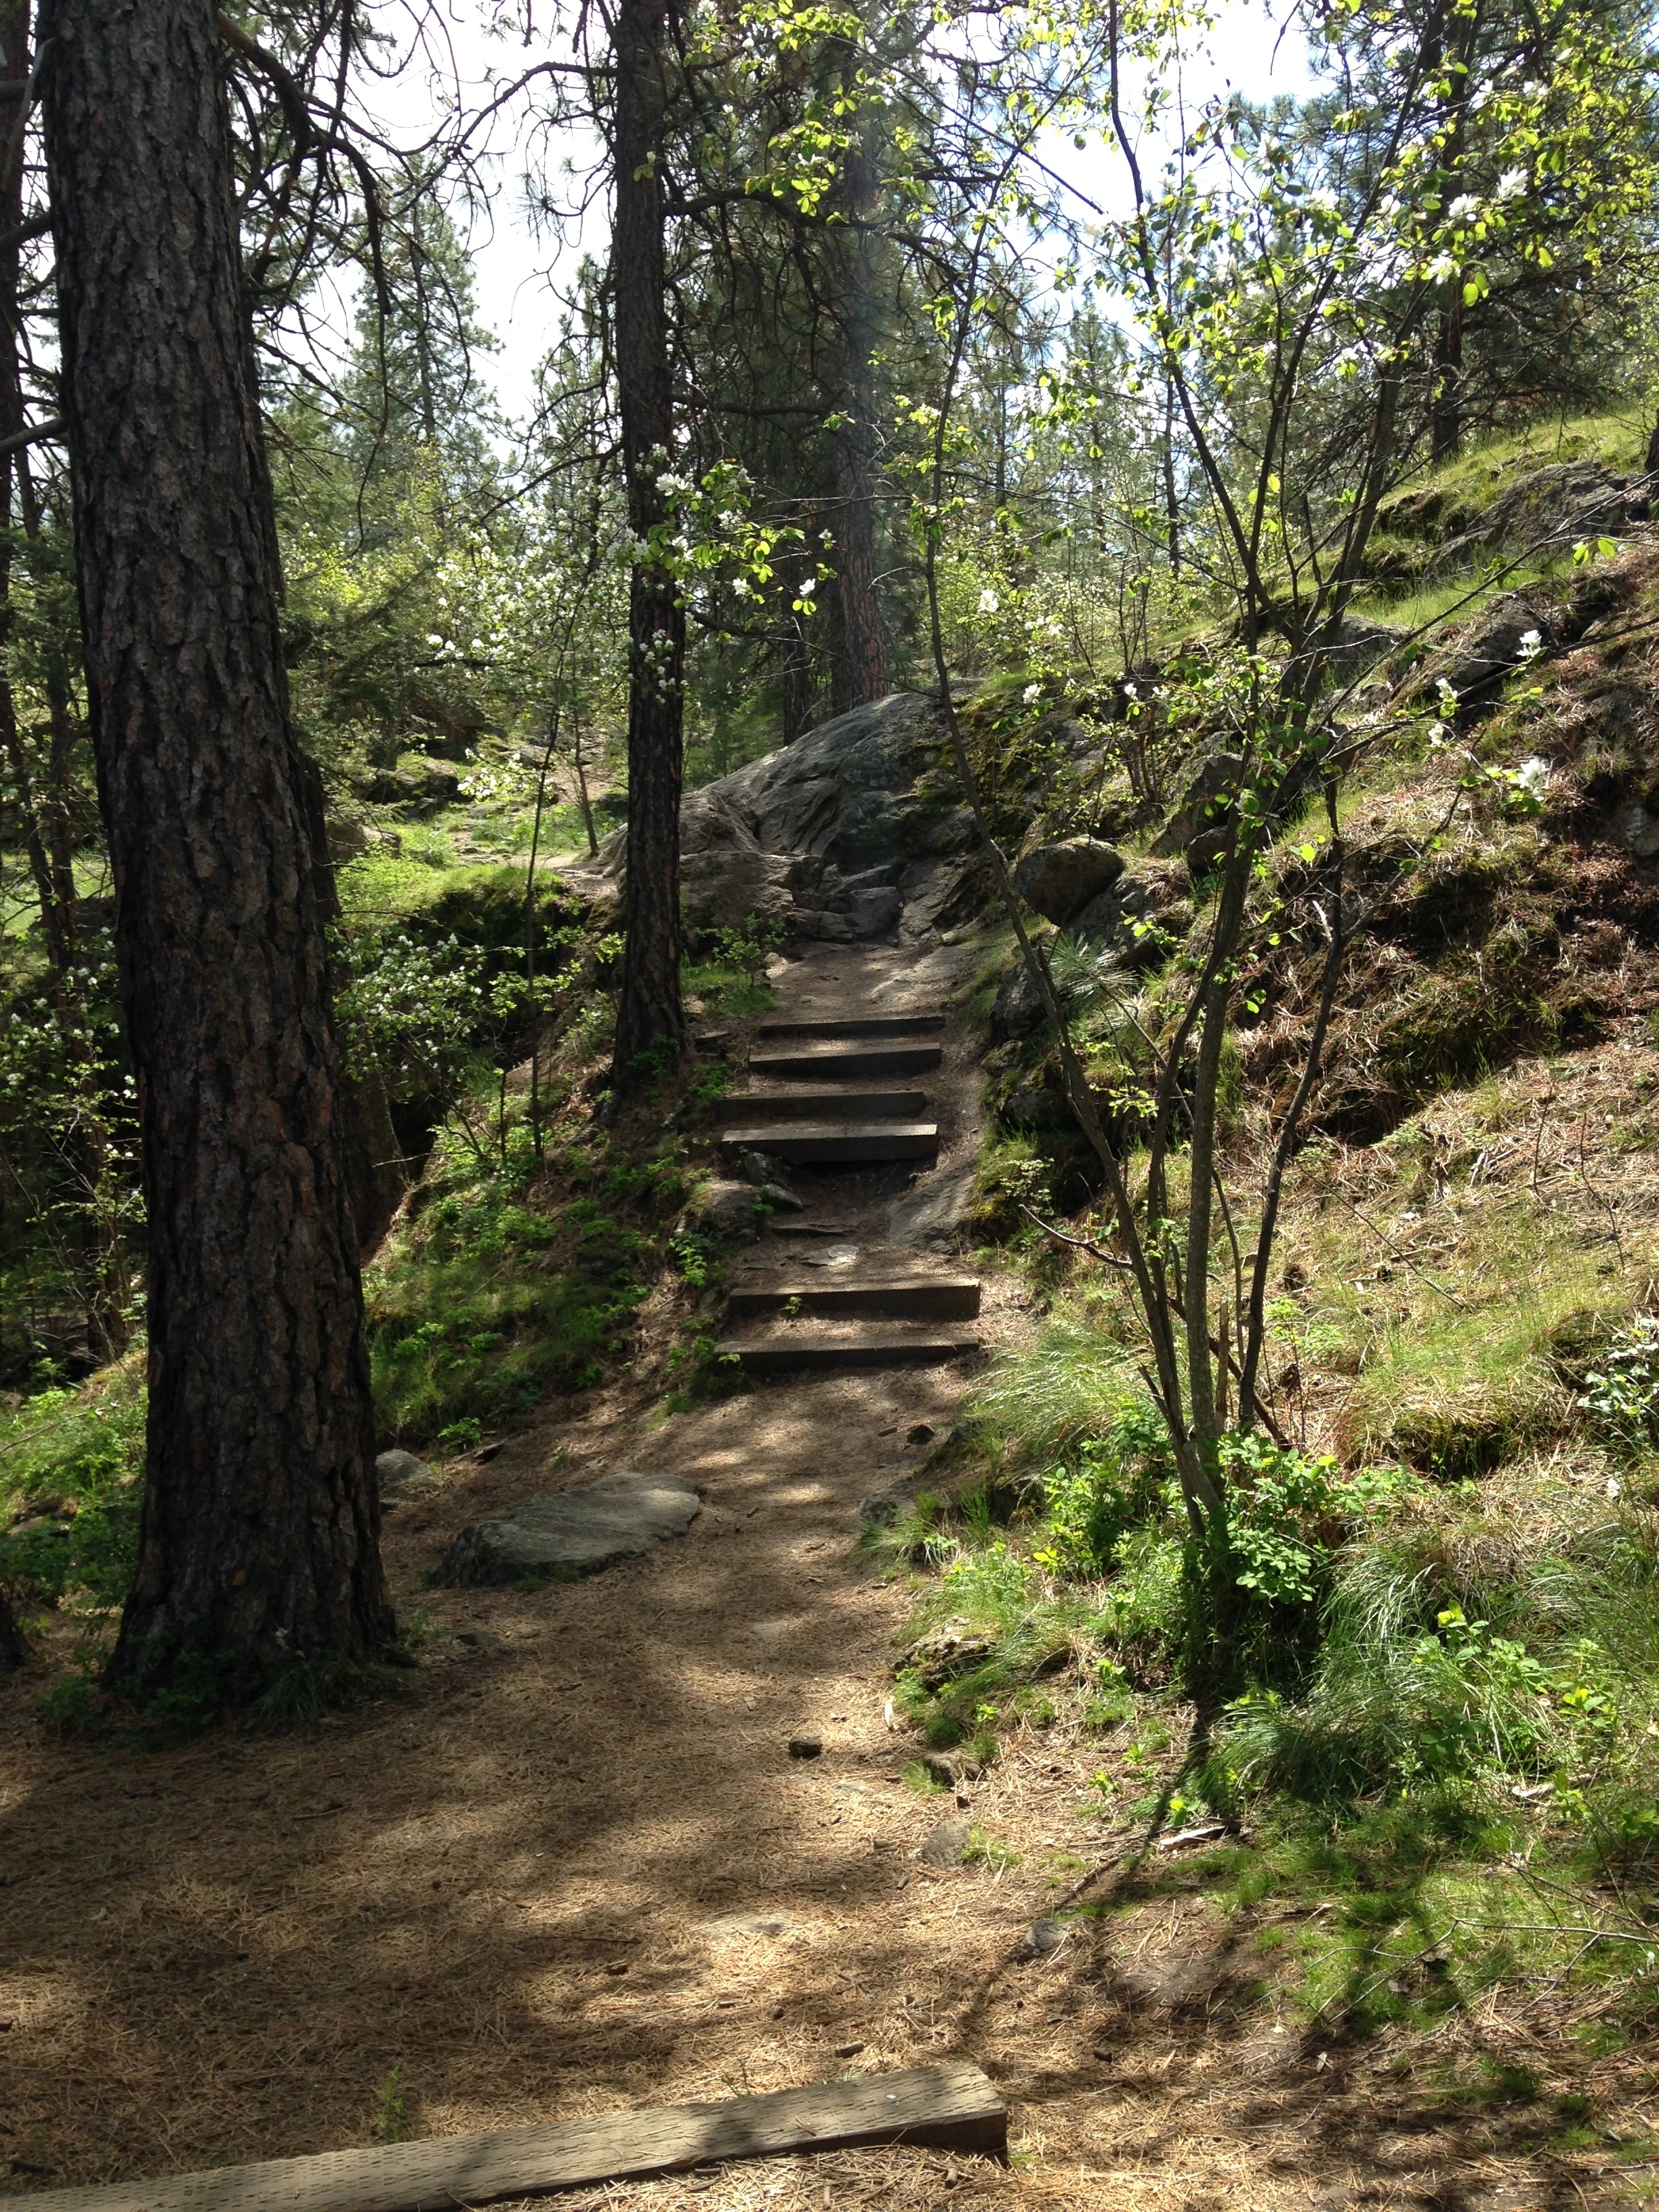 Hiking trails in the Dishman Hills are winding and exploratory.